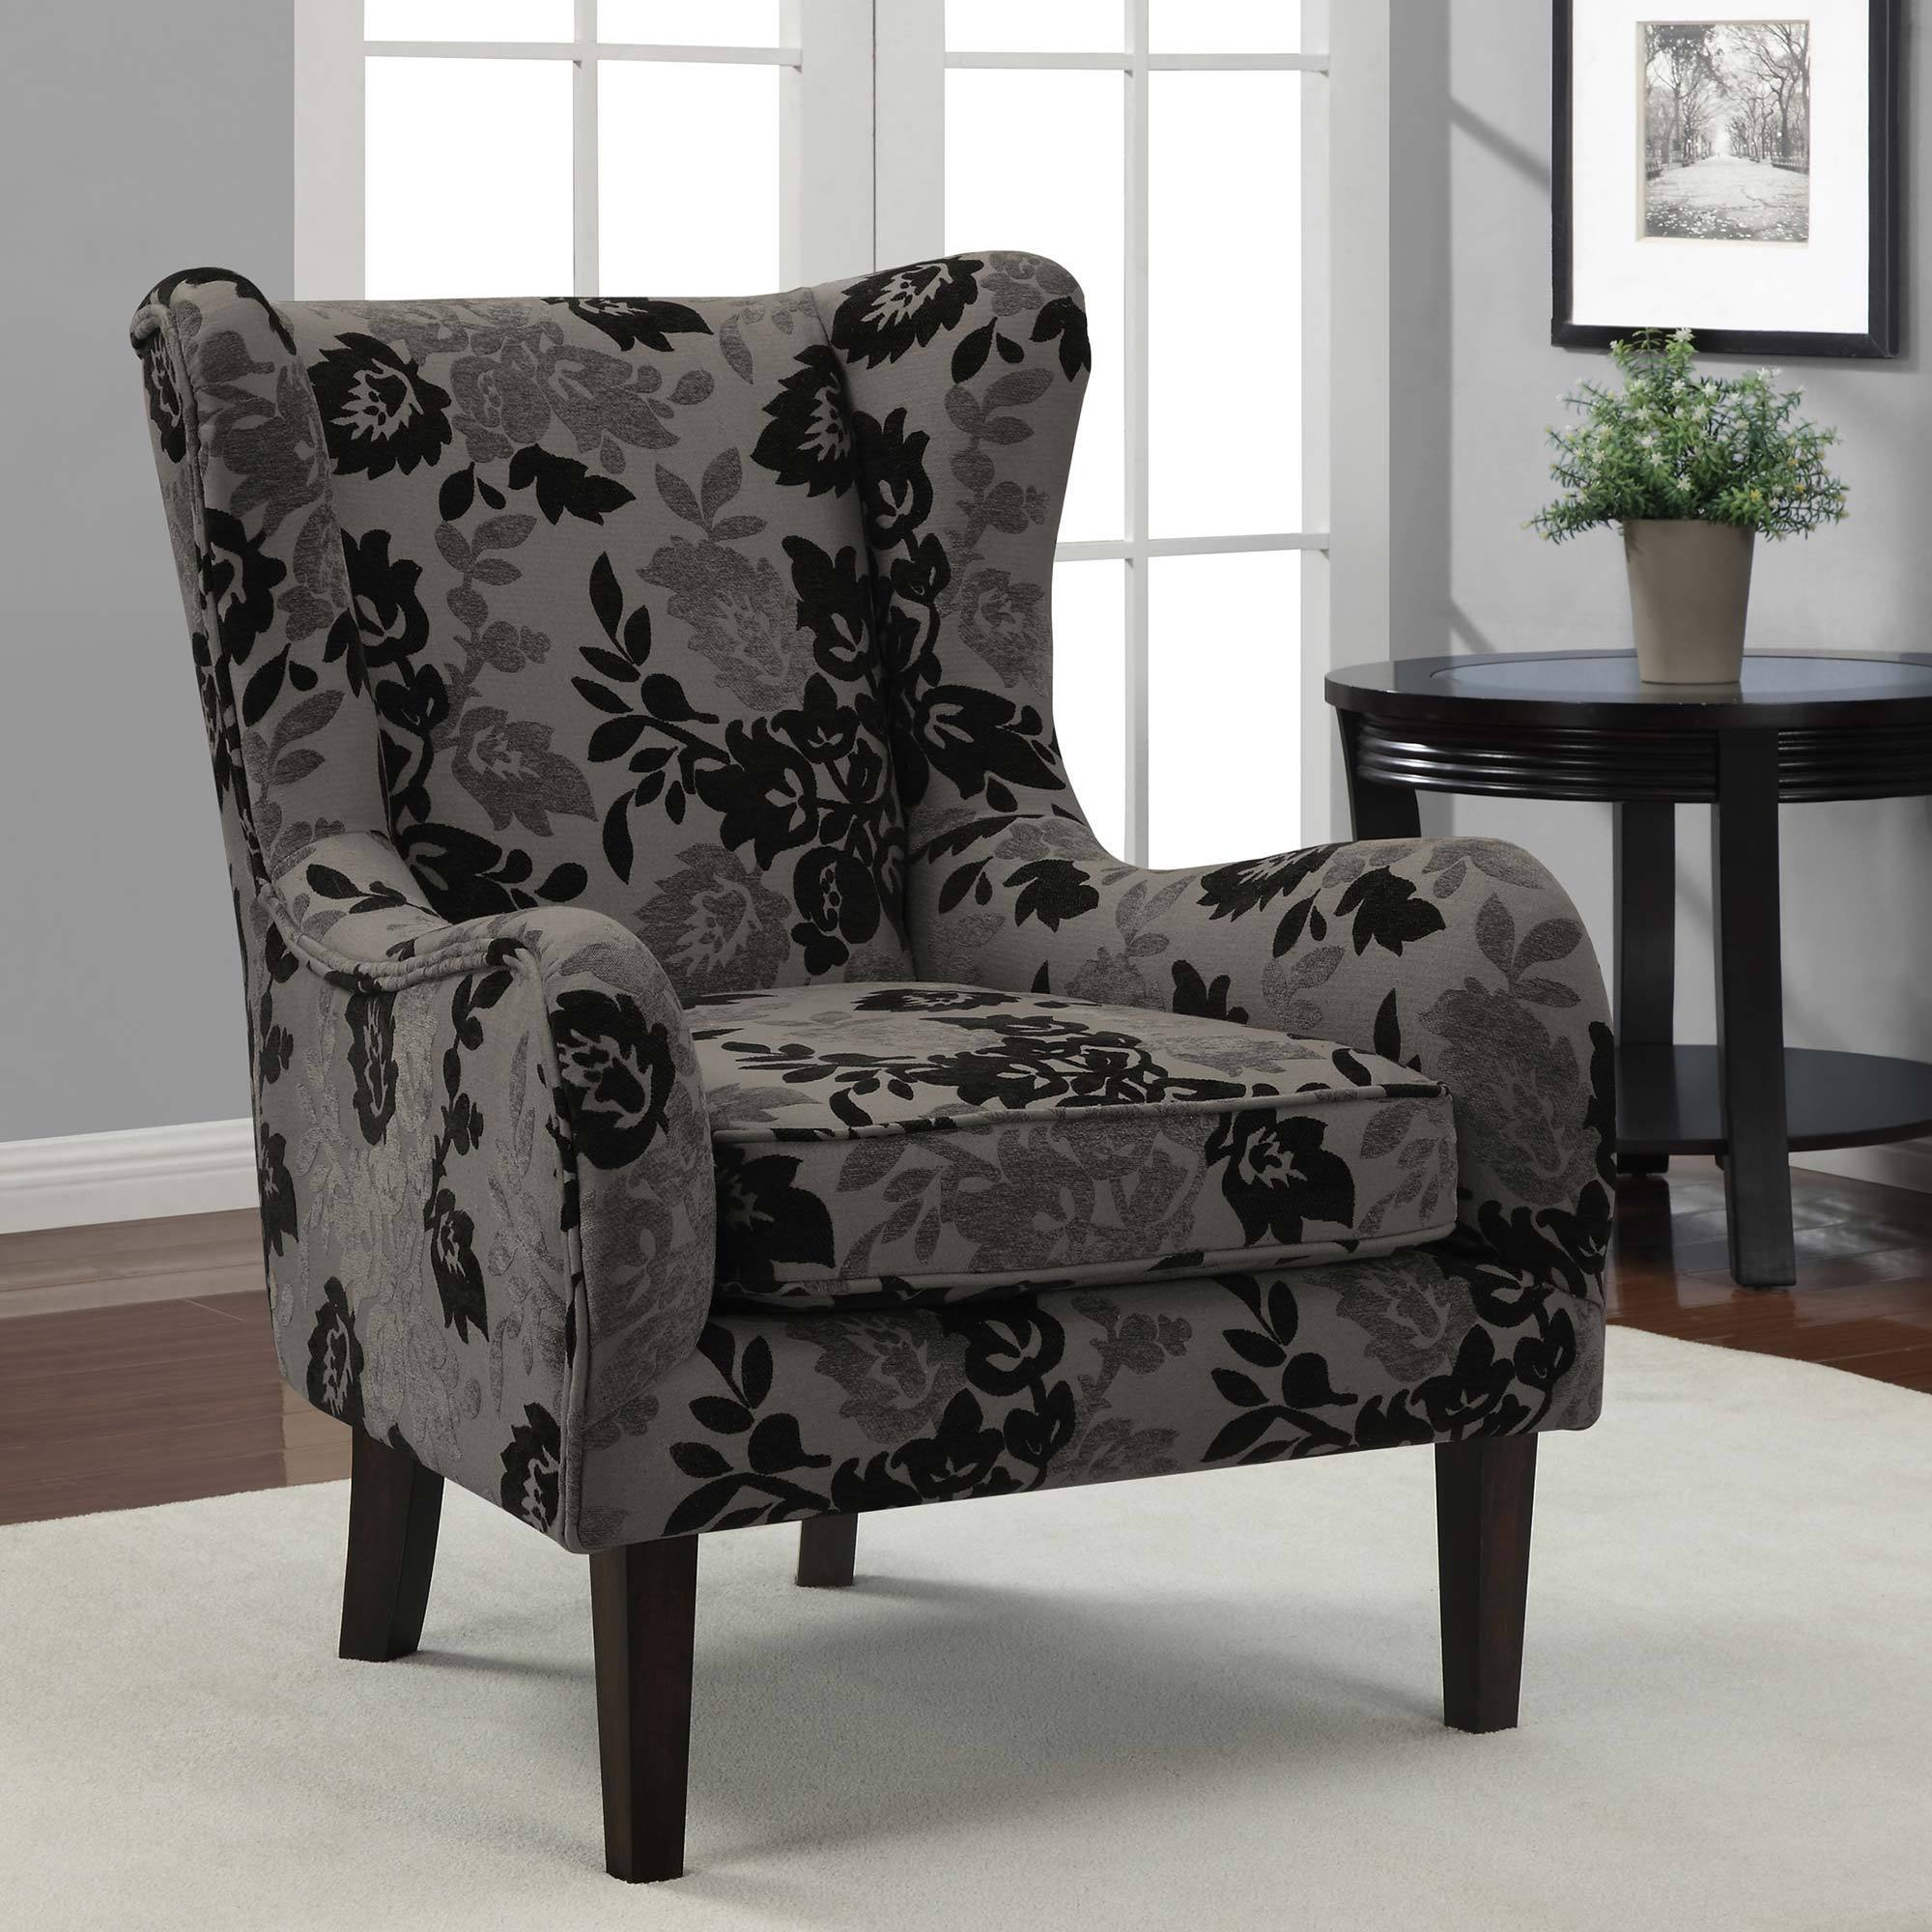 Floral Grey/ Black Curved Wing Chair